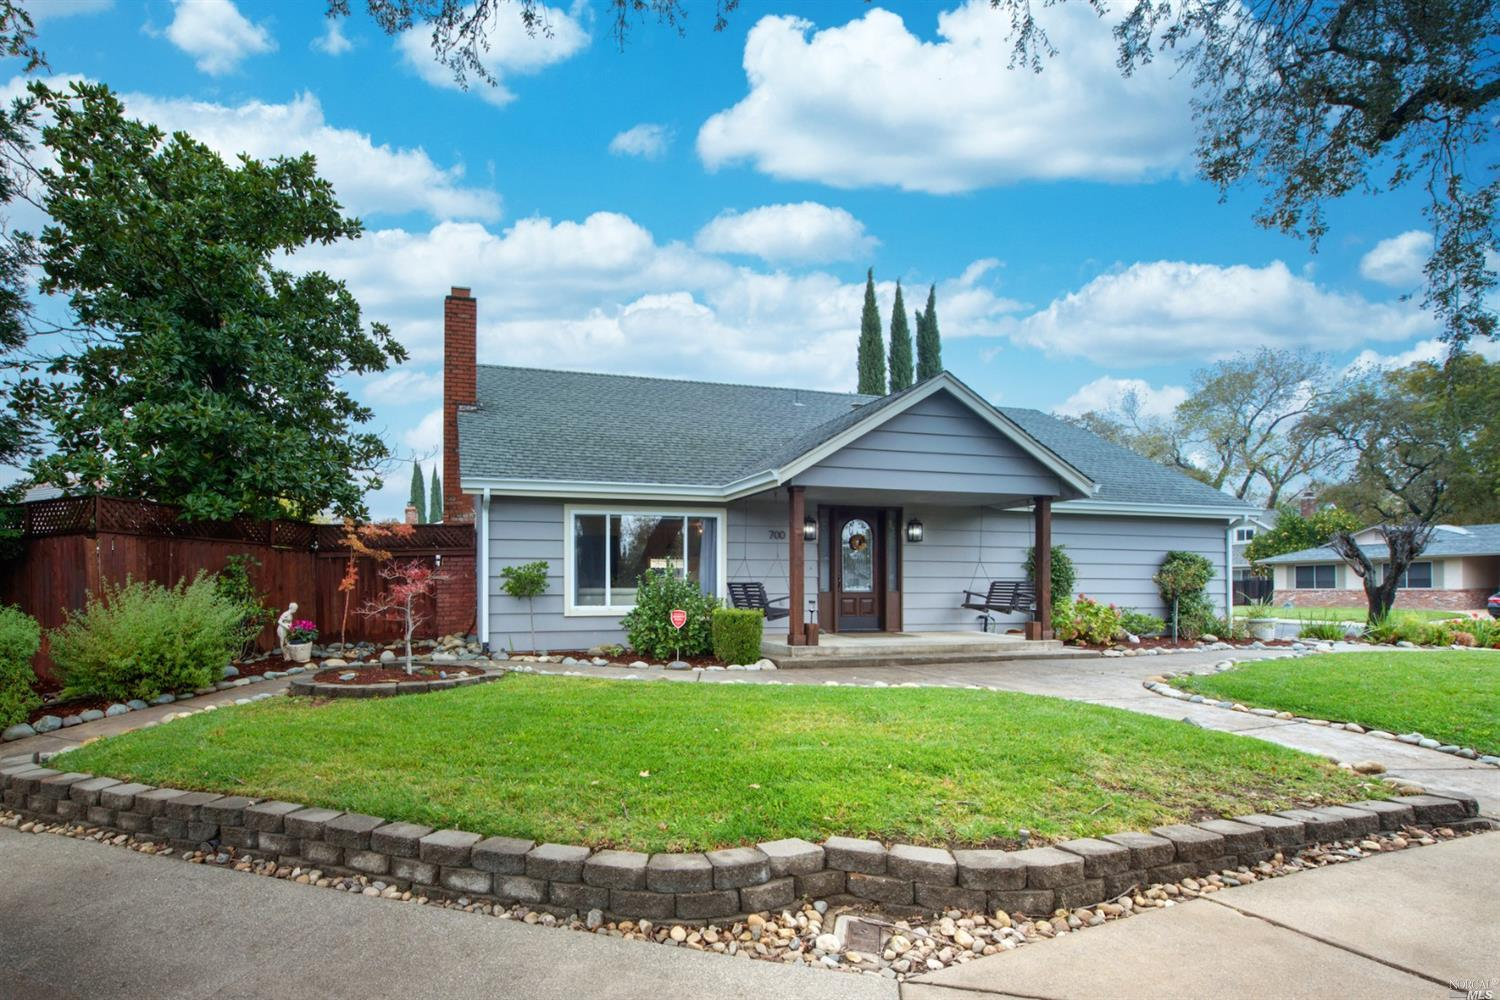 A Northern beauty. This unique home, in North Vacaville has been artfully updated. Step through the